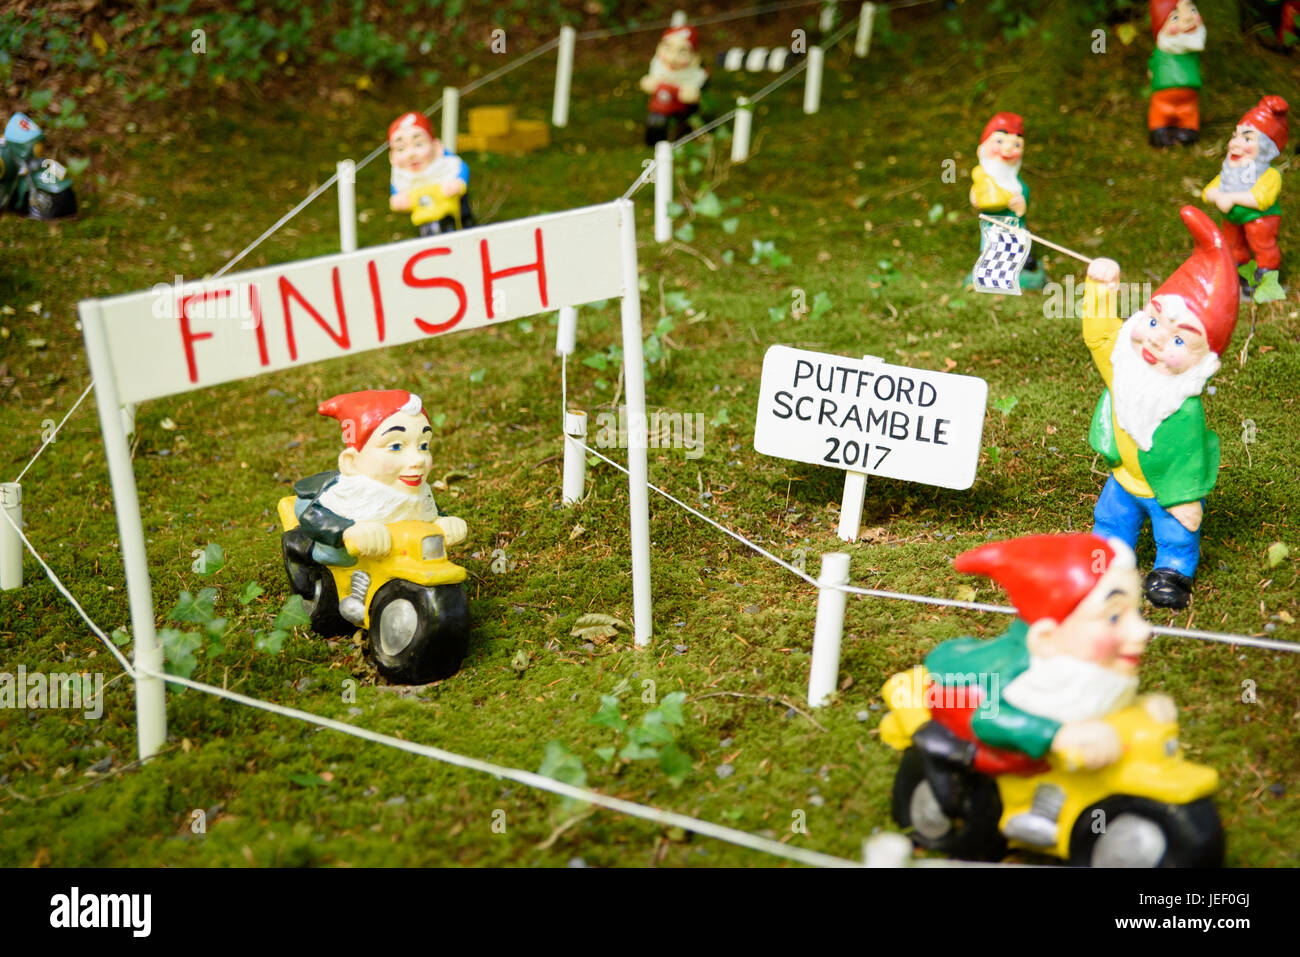 The finish line of a gnome motorcycle race - Stock Image